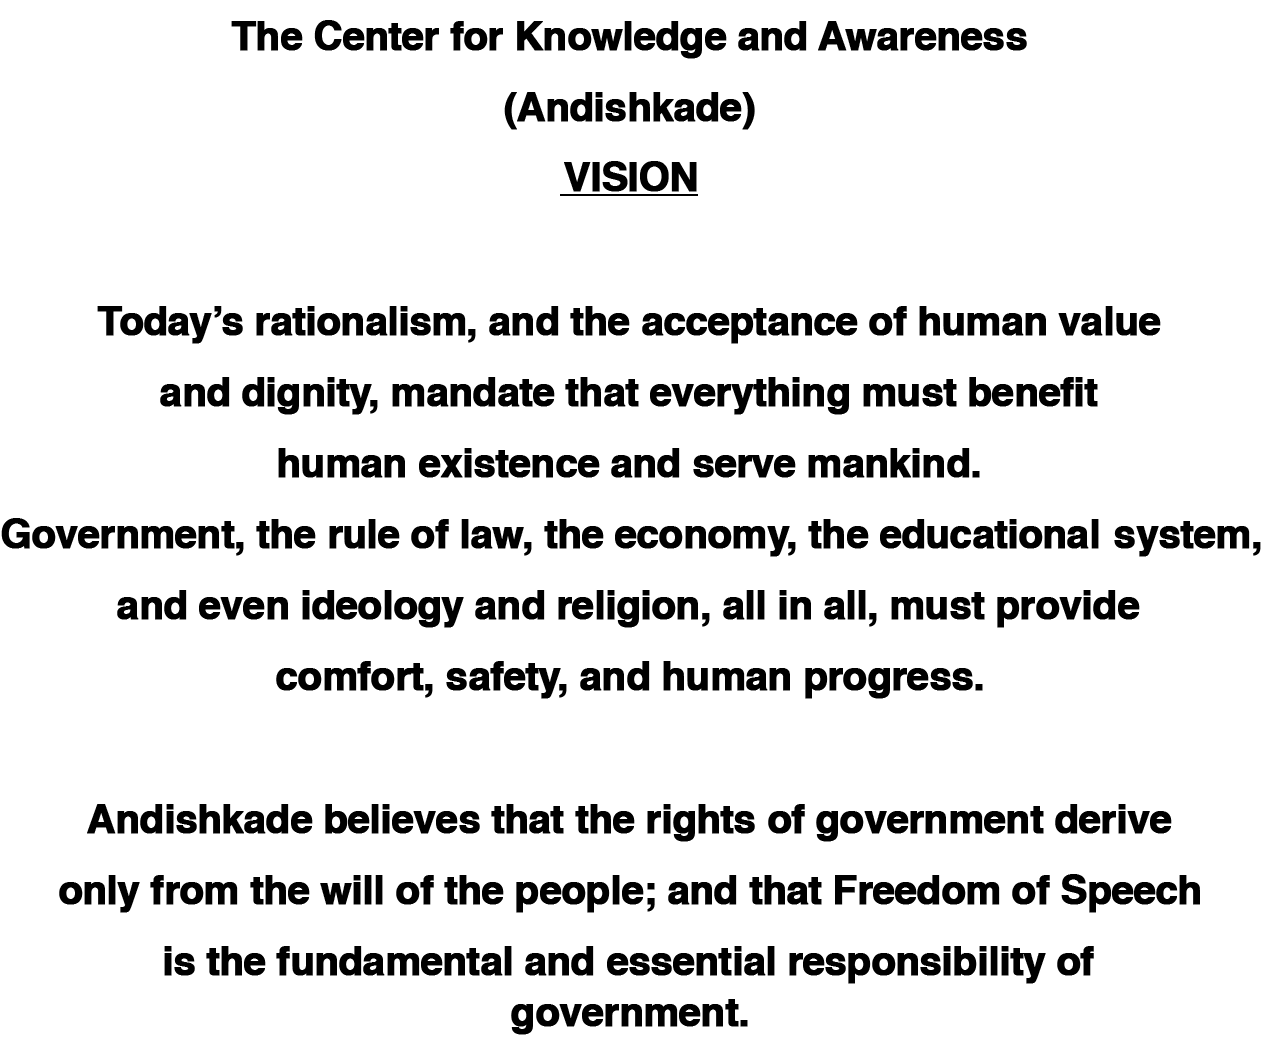 Andishkade Vision - The Center for Knowledge and Awareness